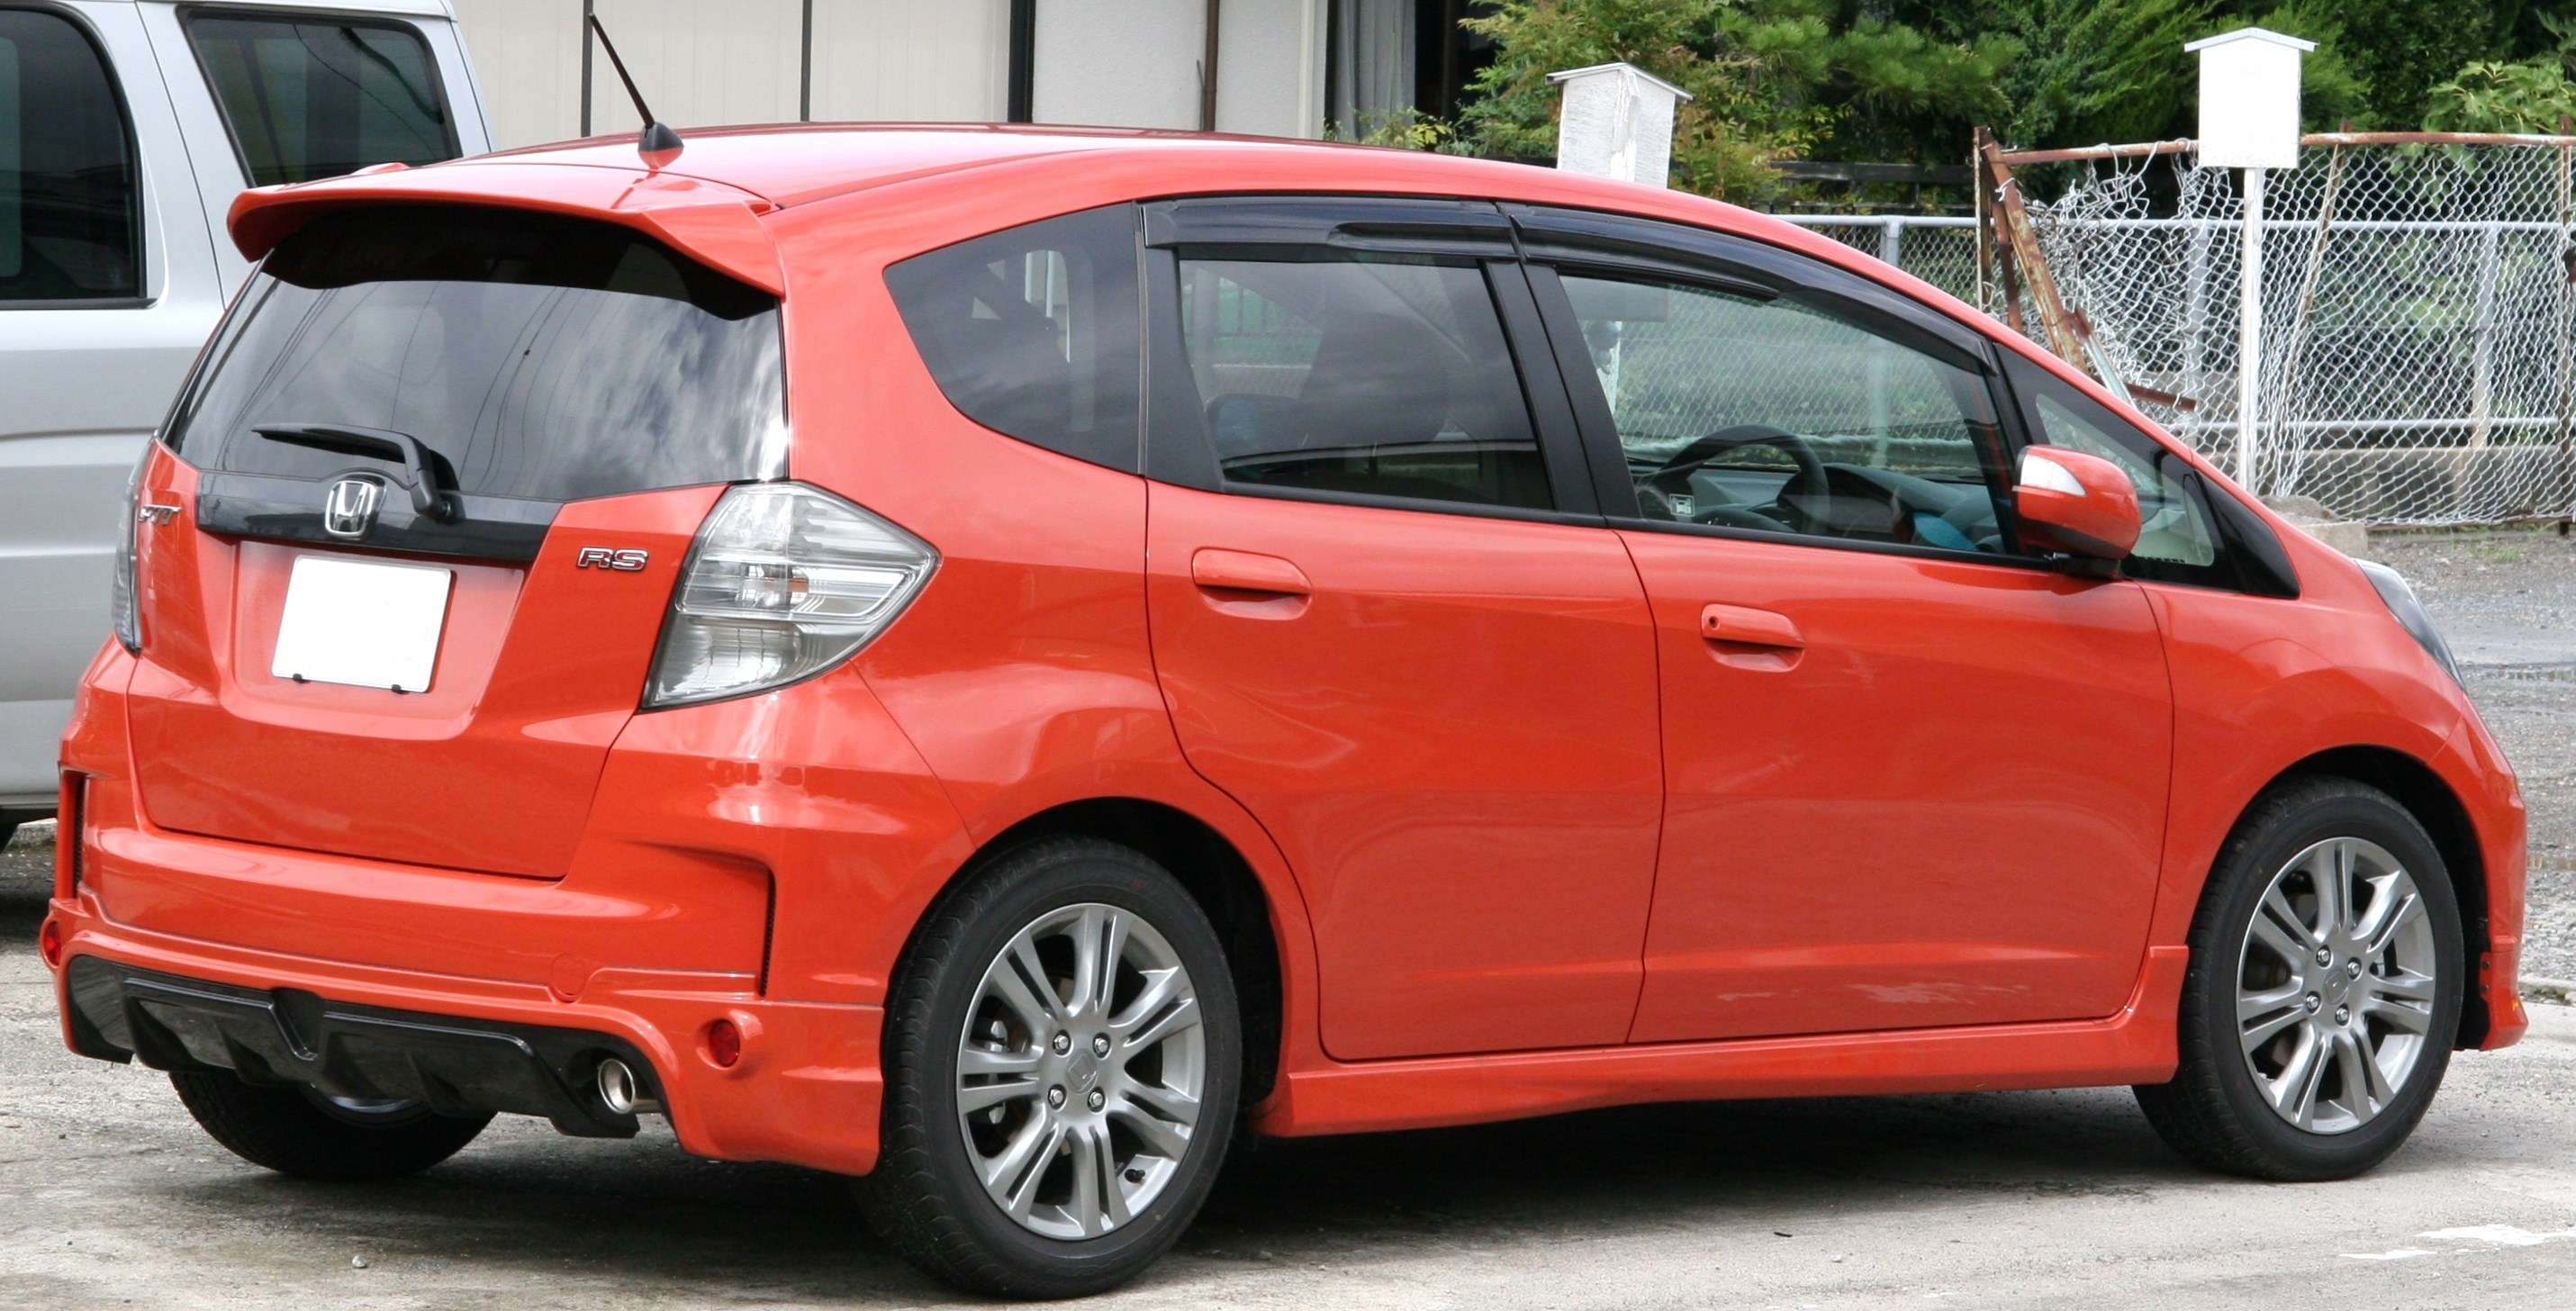 Genial What Did You Do To Your GE Fit Today?   Page 573   Unofficial Honda FIT  Forums